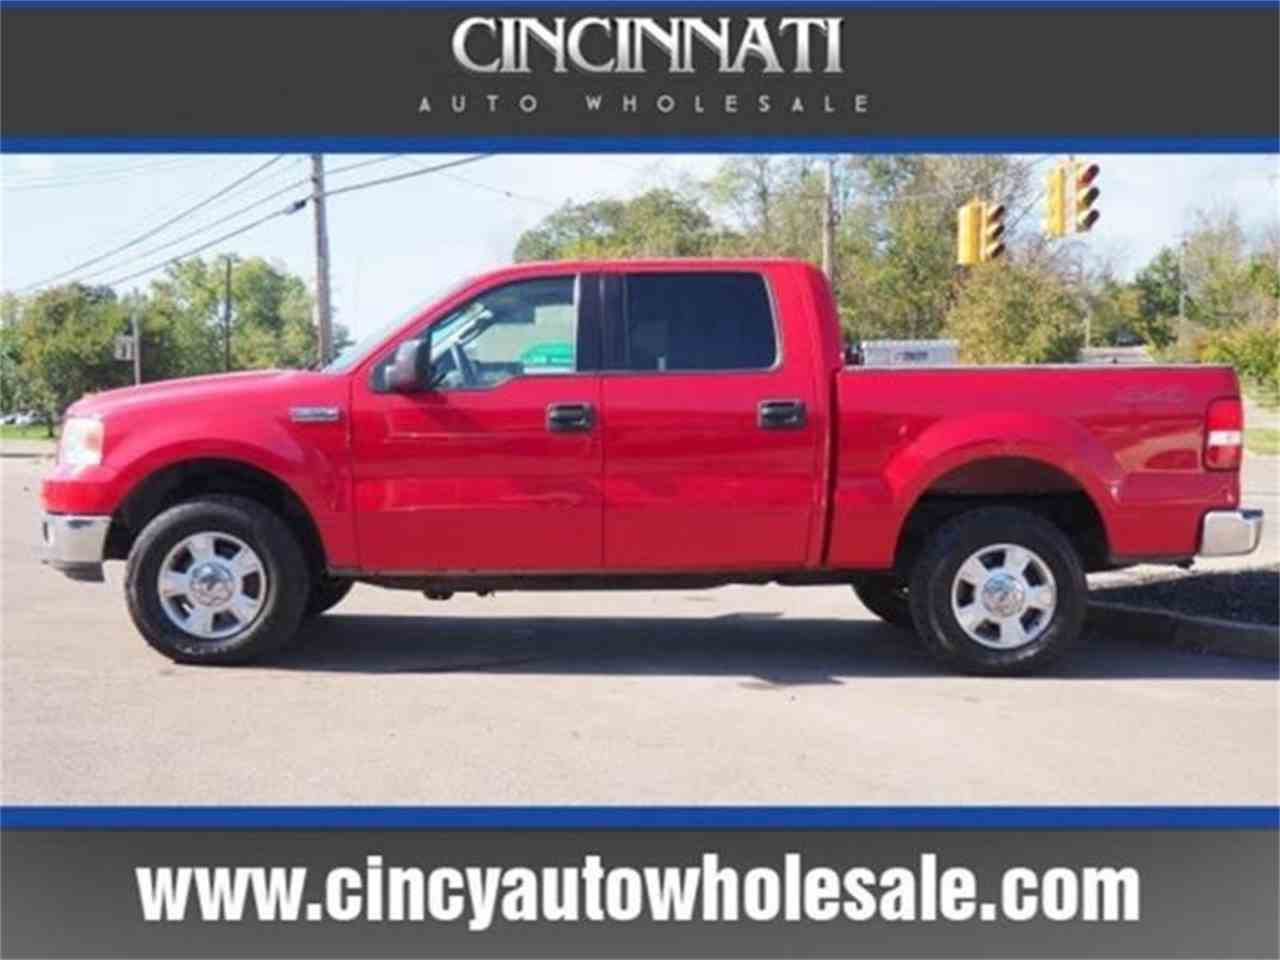 Large Picture of 2004 Ford F150 - $6,400.00 Offered by Cincinnati Auto Wholesale - MBNE